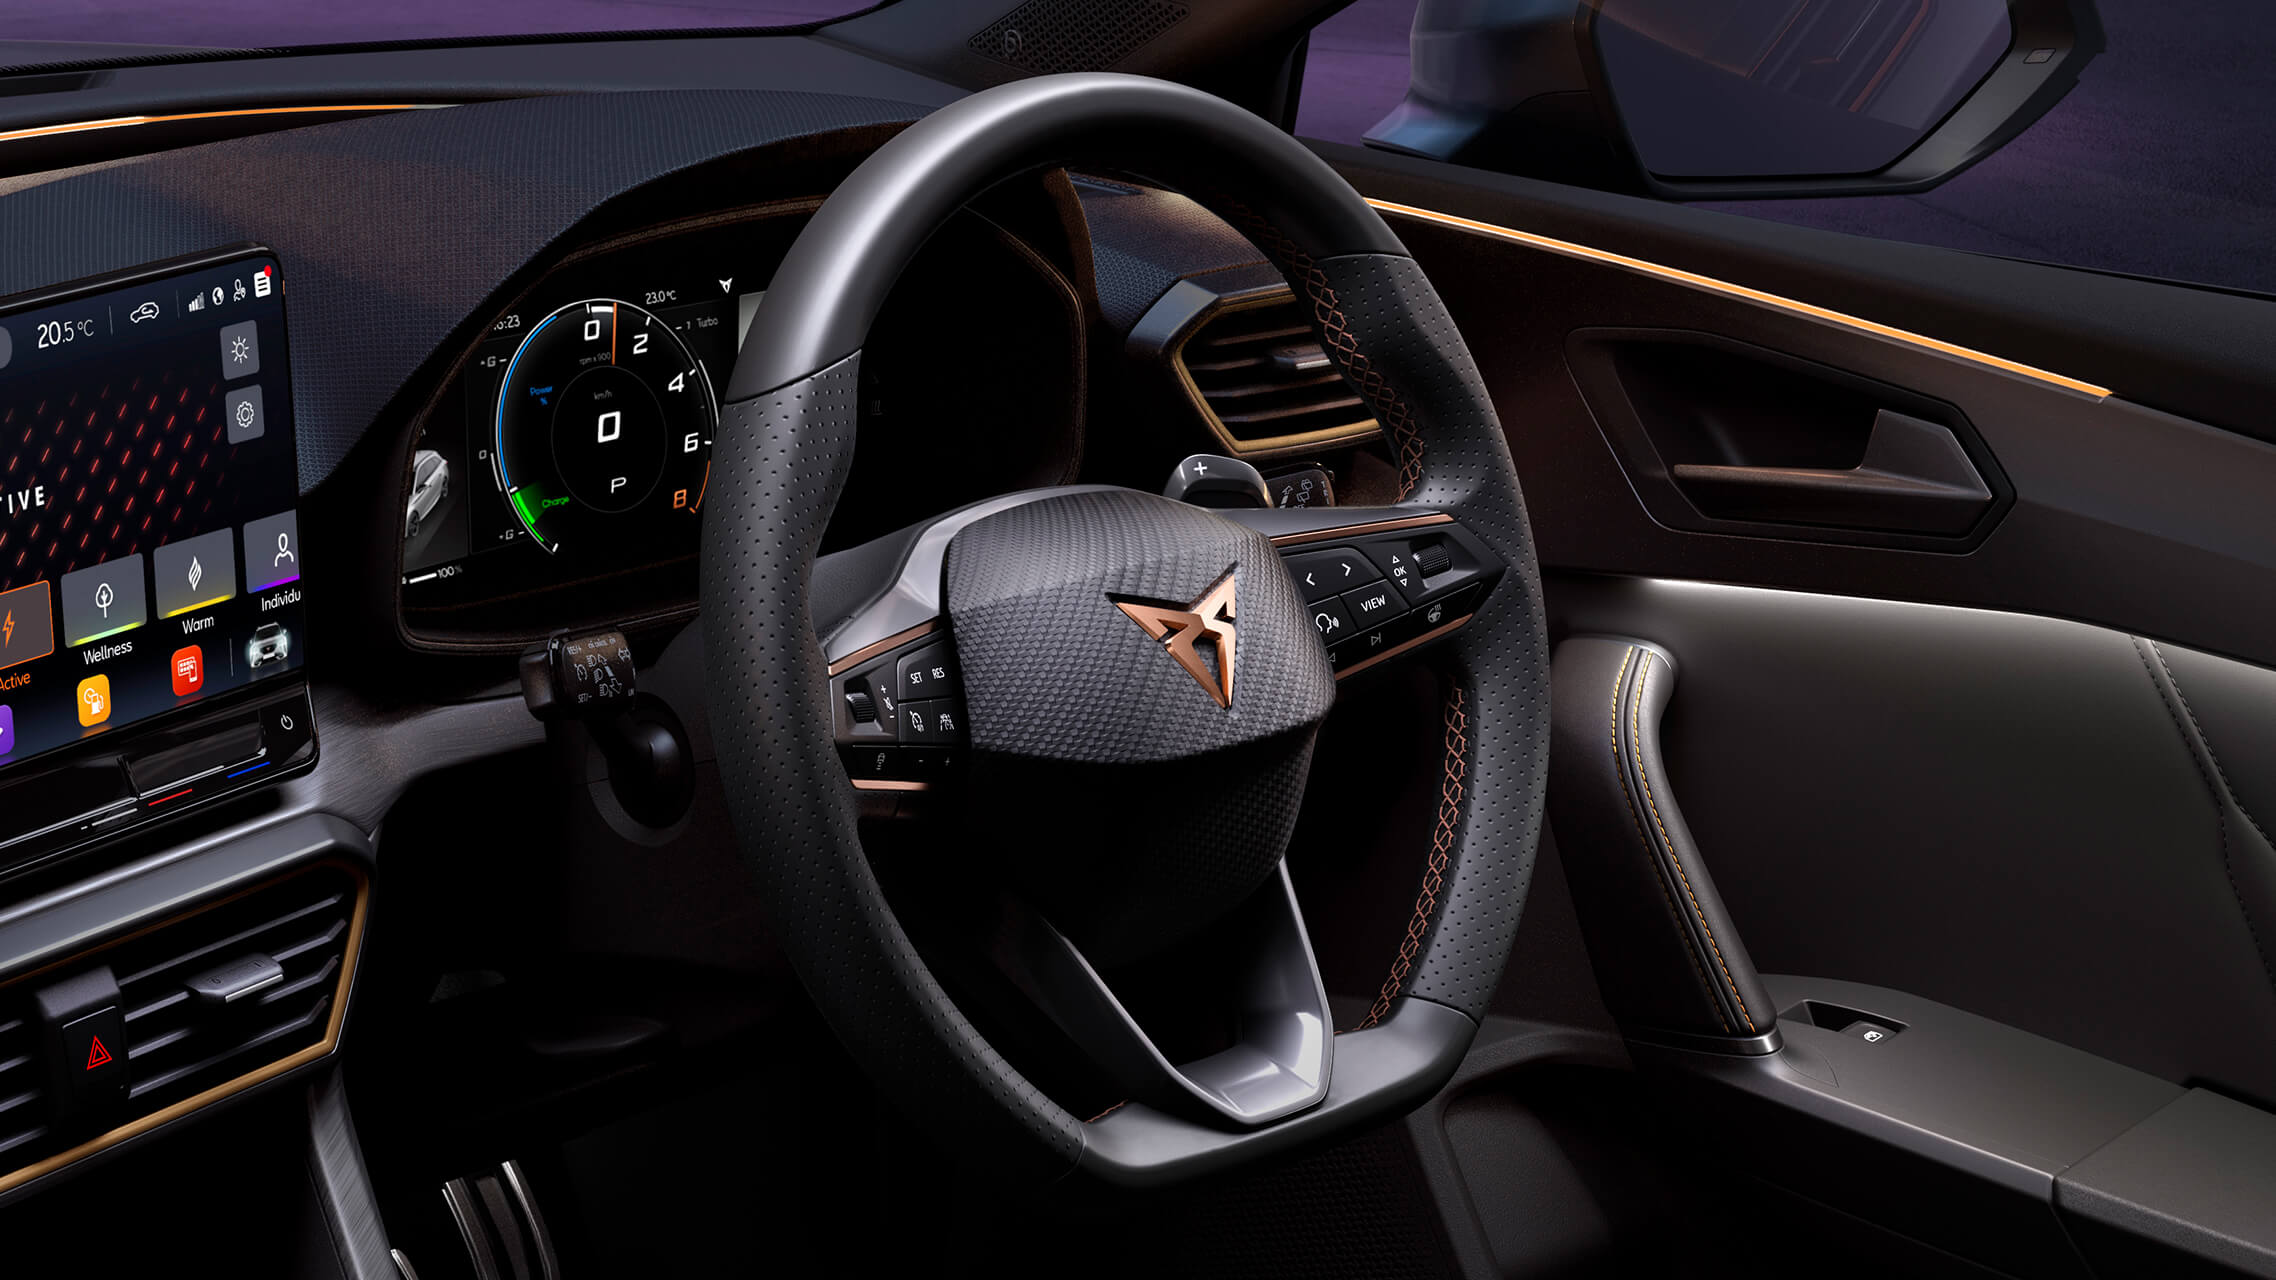 new CUPRA Leon ehybrid compact sports car interior view of leather steering wheel with driving profile mode button